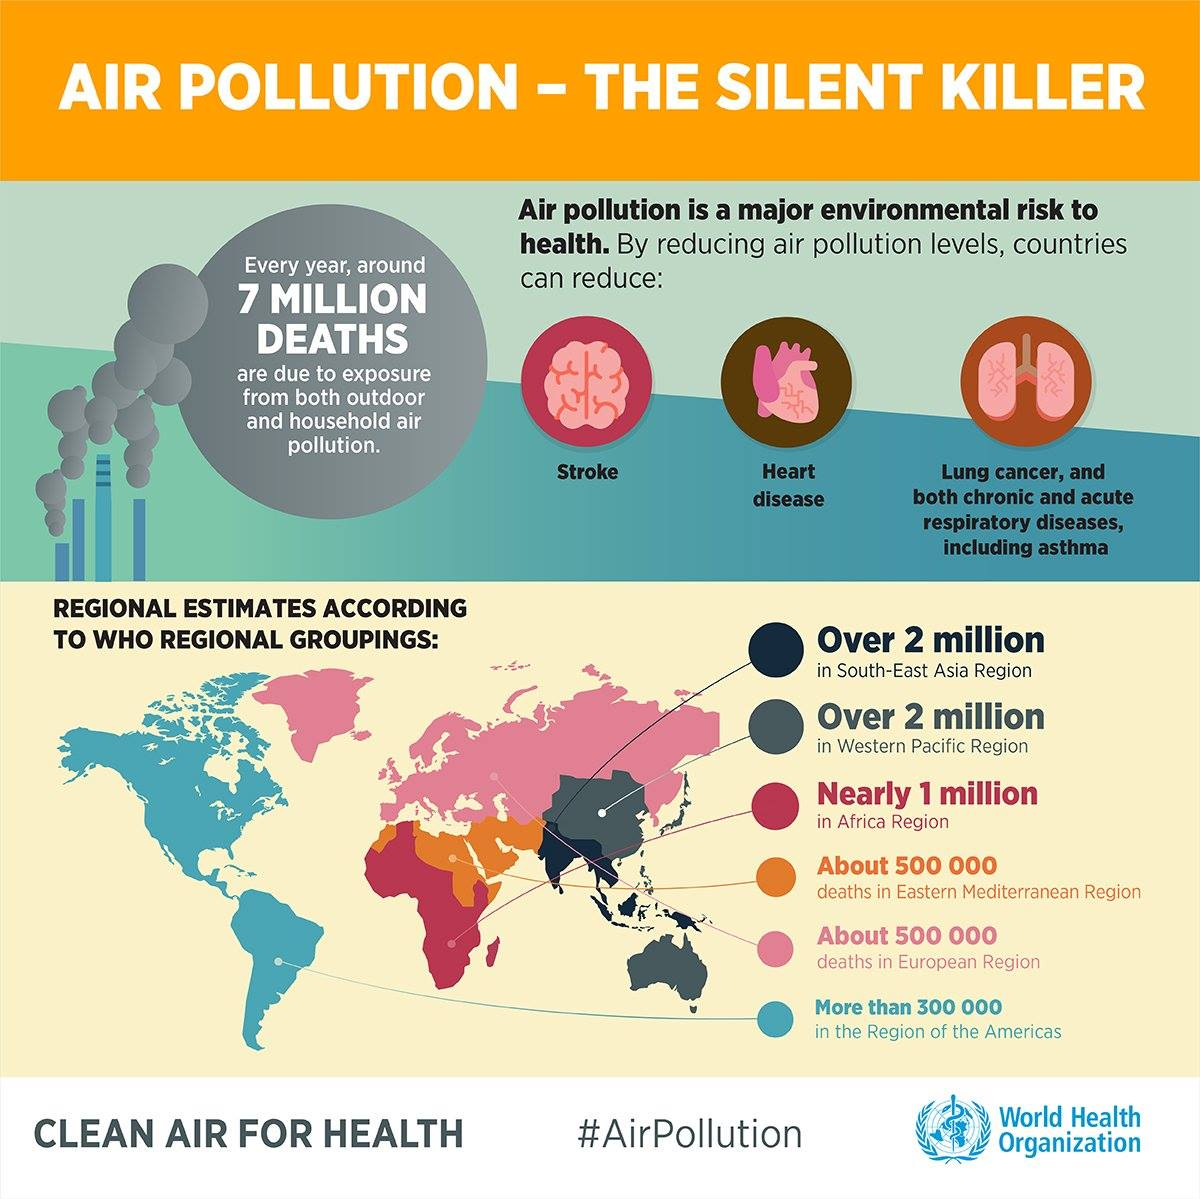 Air Pollution infographic showing stats about deaths worldwide